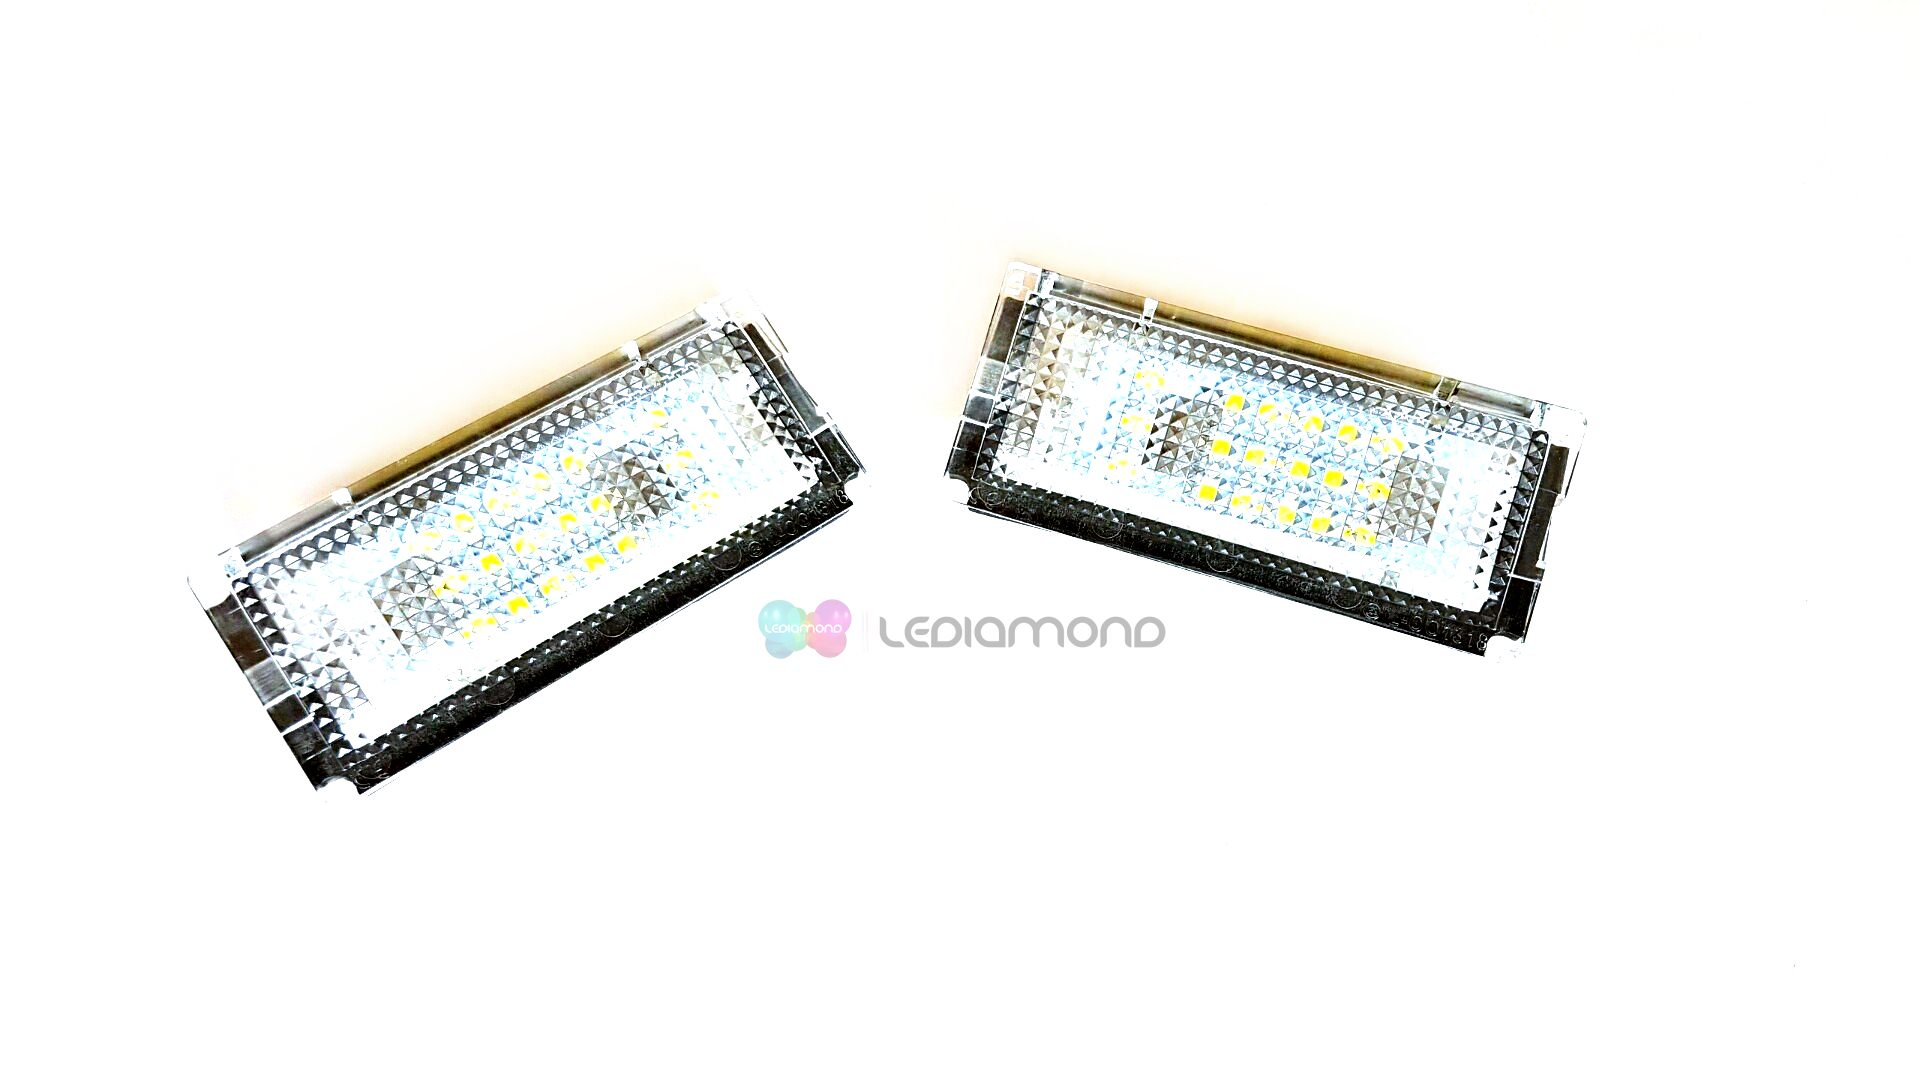 PLAFONES MATRICULA LED BMW E46 SEDAN Y TOURING LEDIAMOND LMD030106